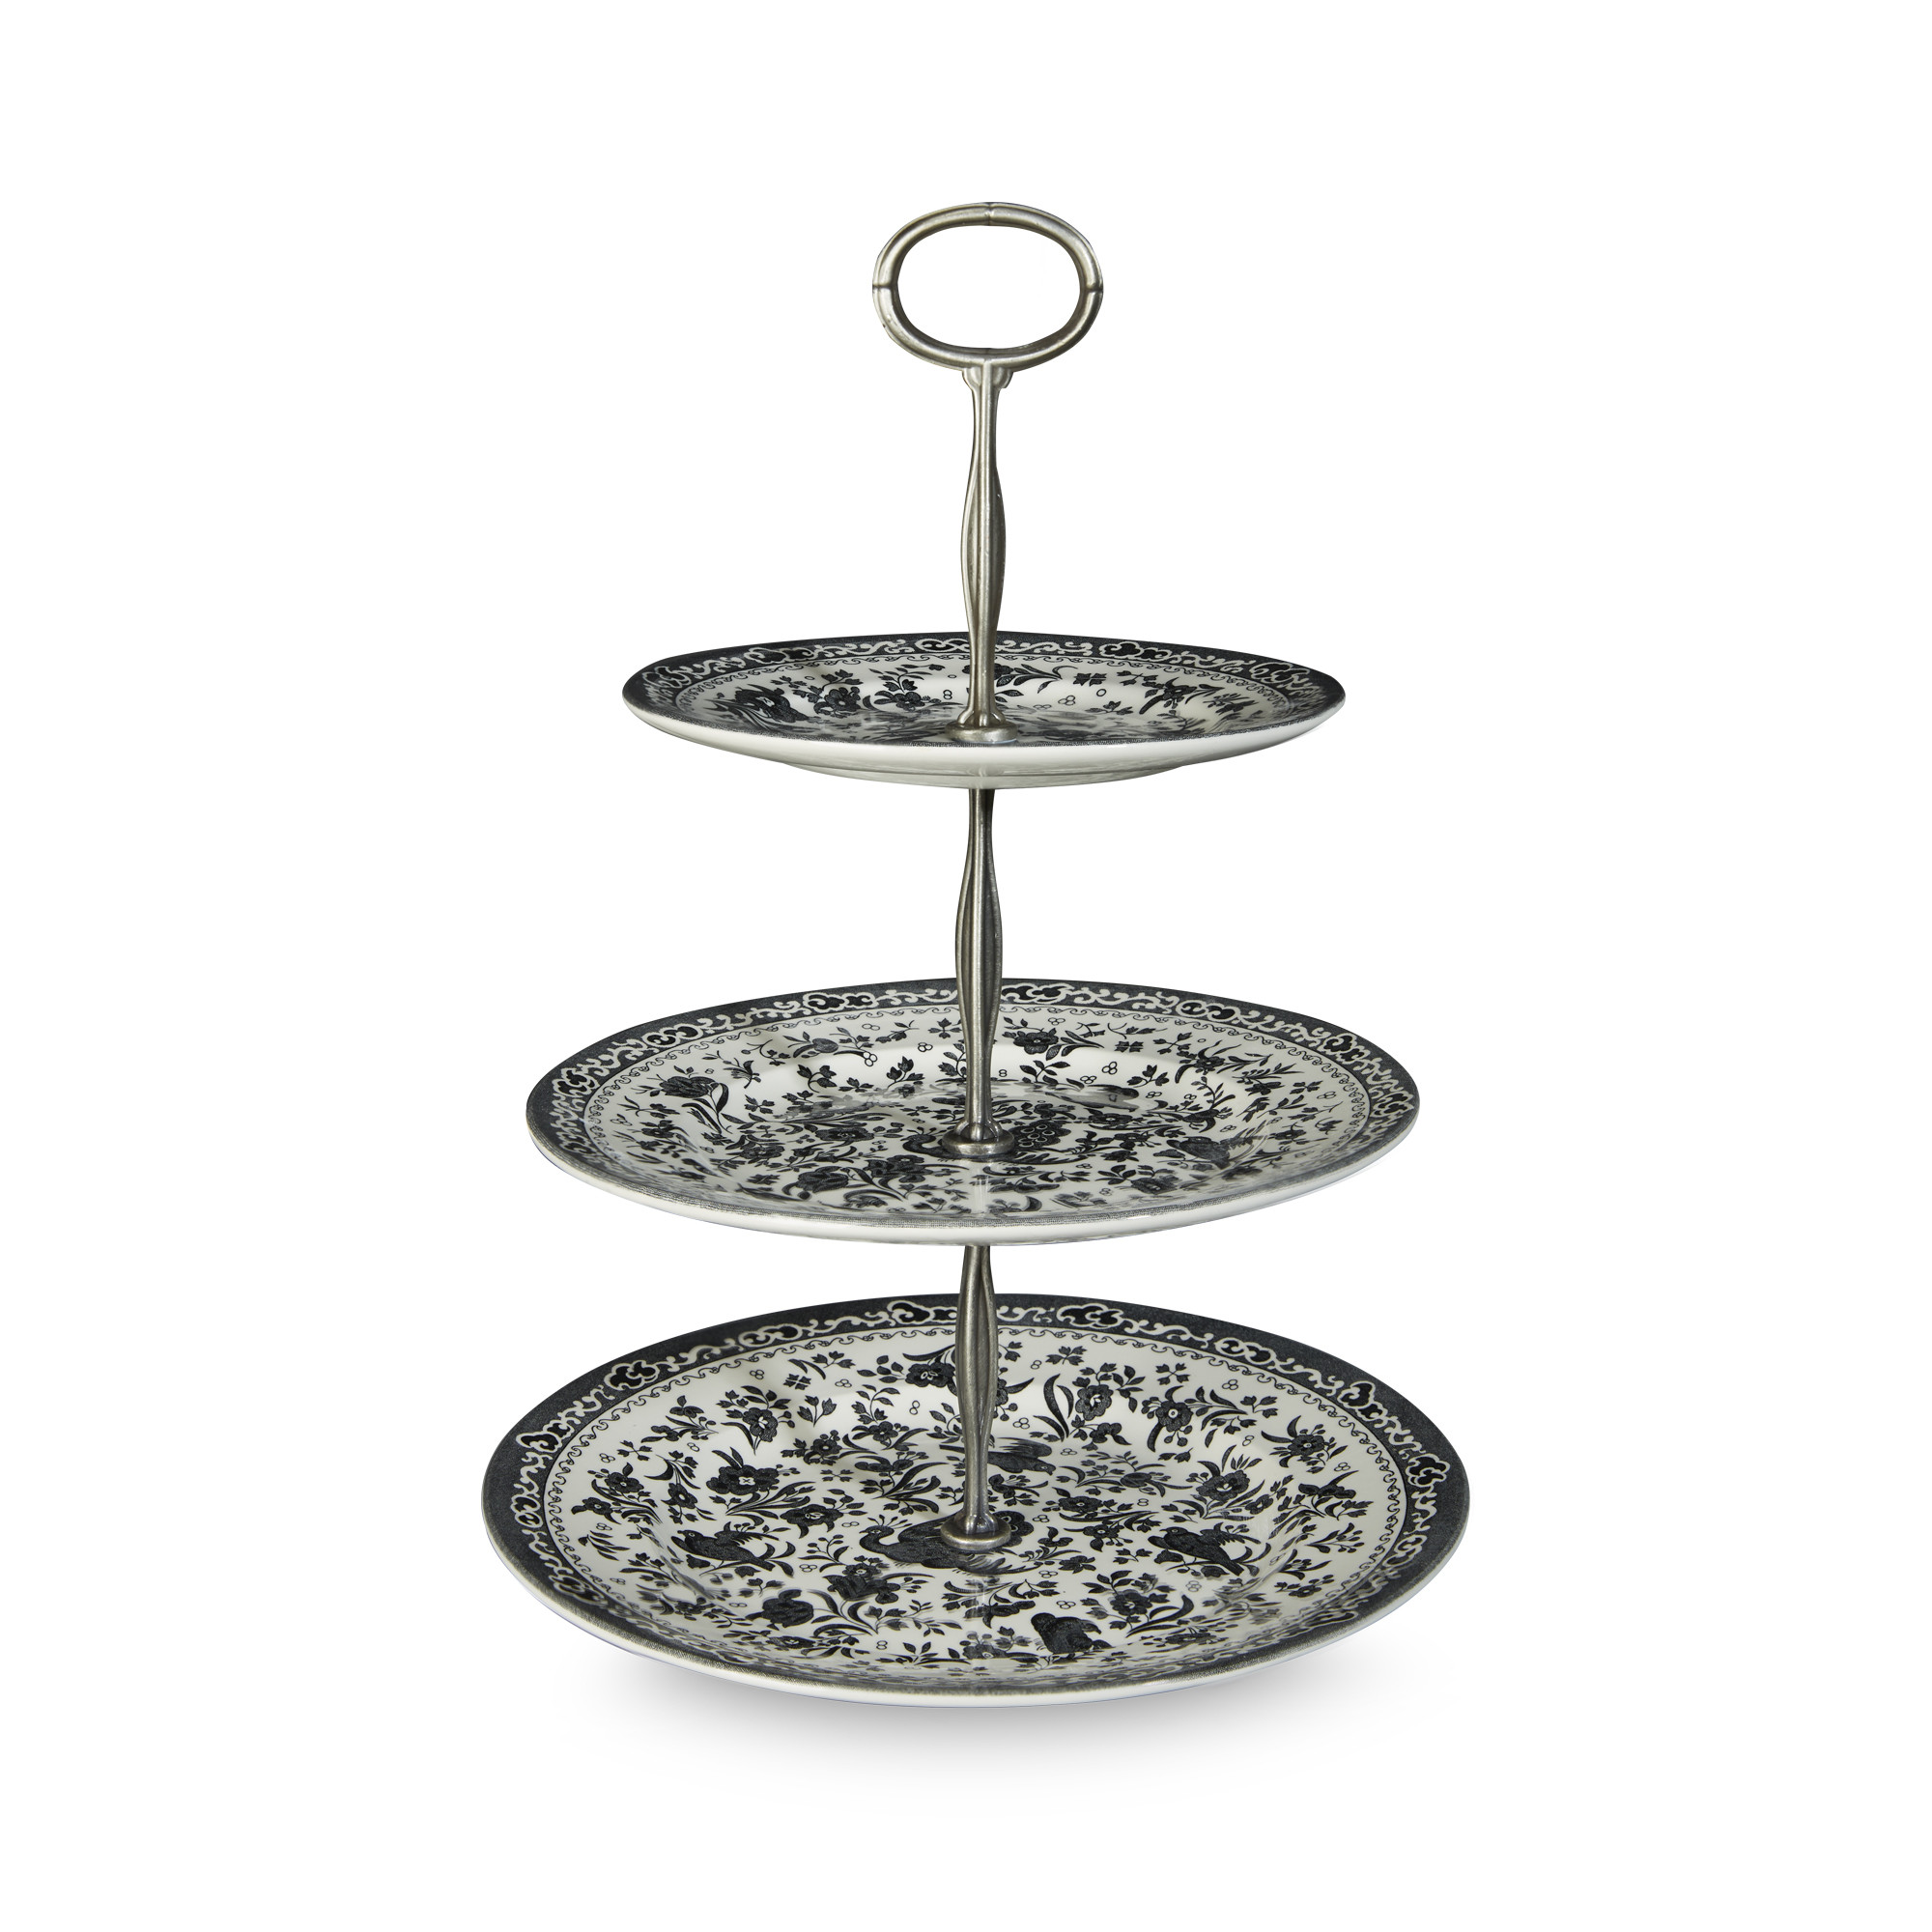 Black Regal Peacock 3 Tier Cake Stand (Gift Boxed) -On Back Order